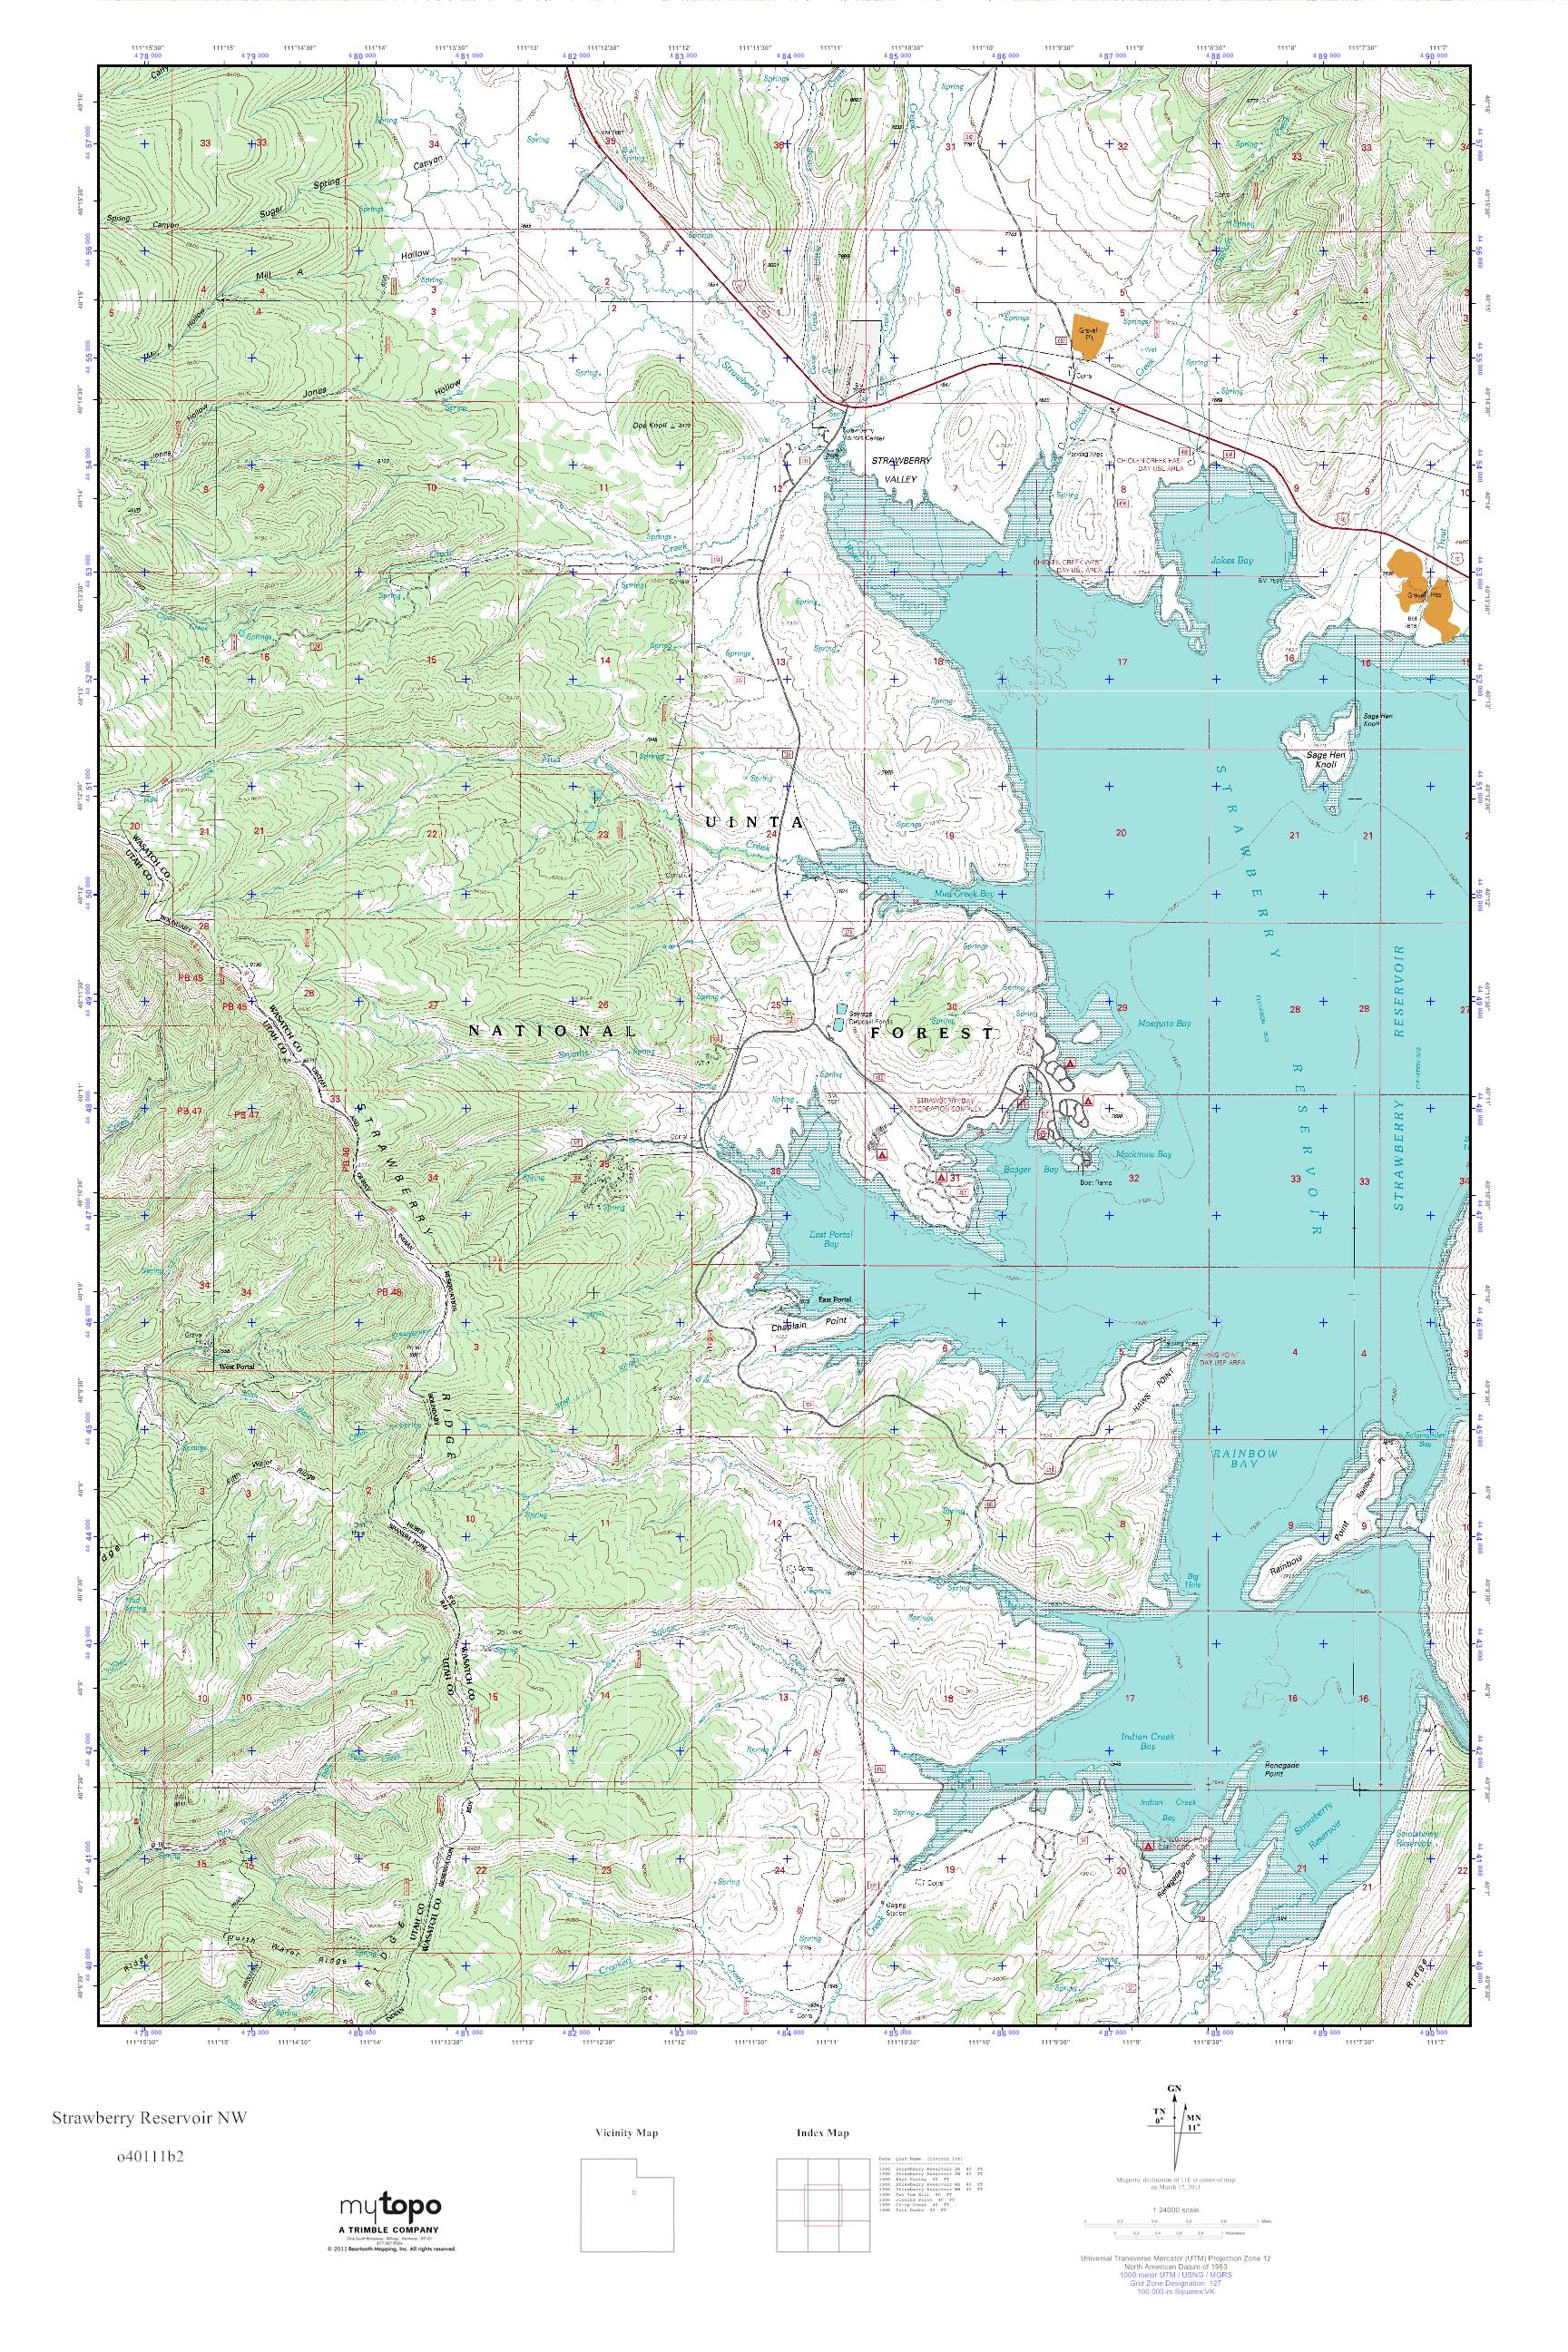 Strawberry Reservoir Map MyTopo Strawberry Reservoir NW, Utah USGS Quad Topo Map Strawberry Reservoir Map